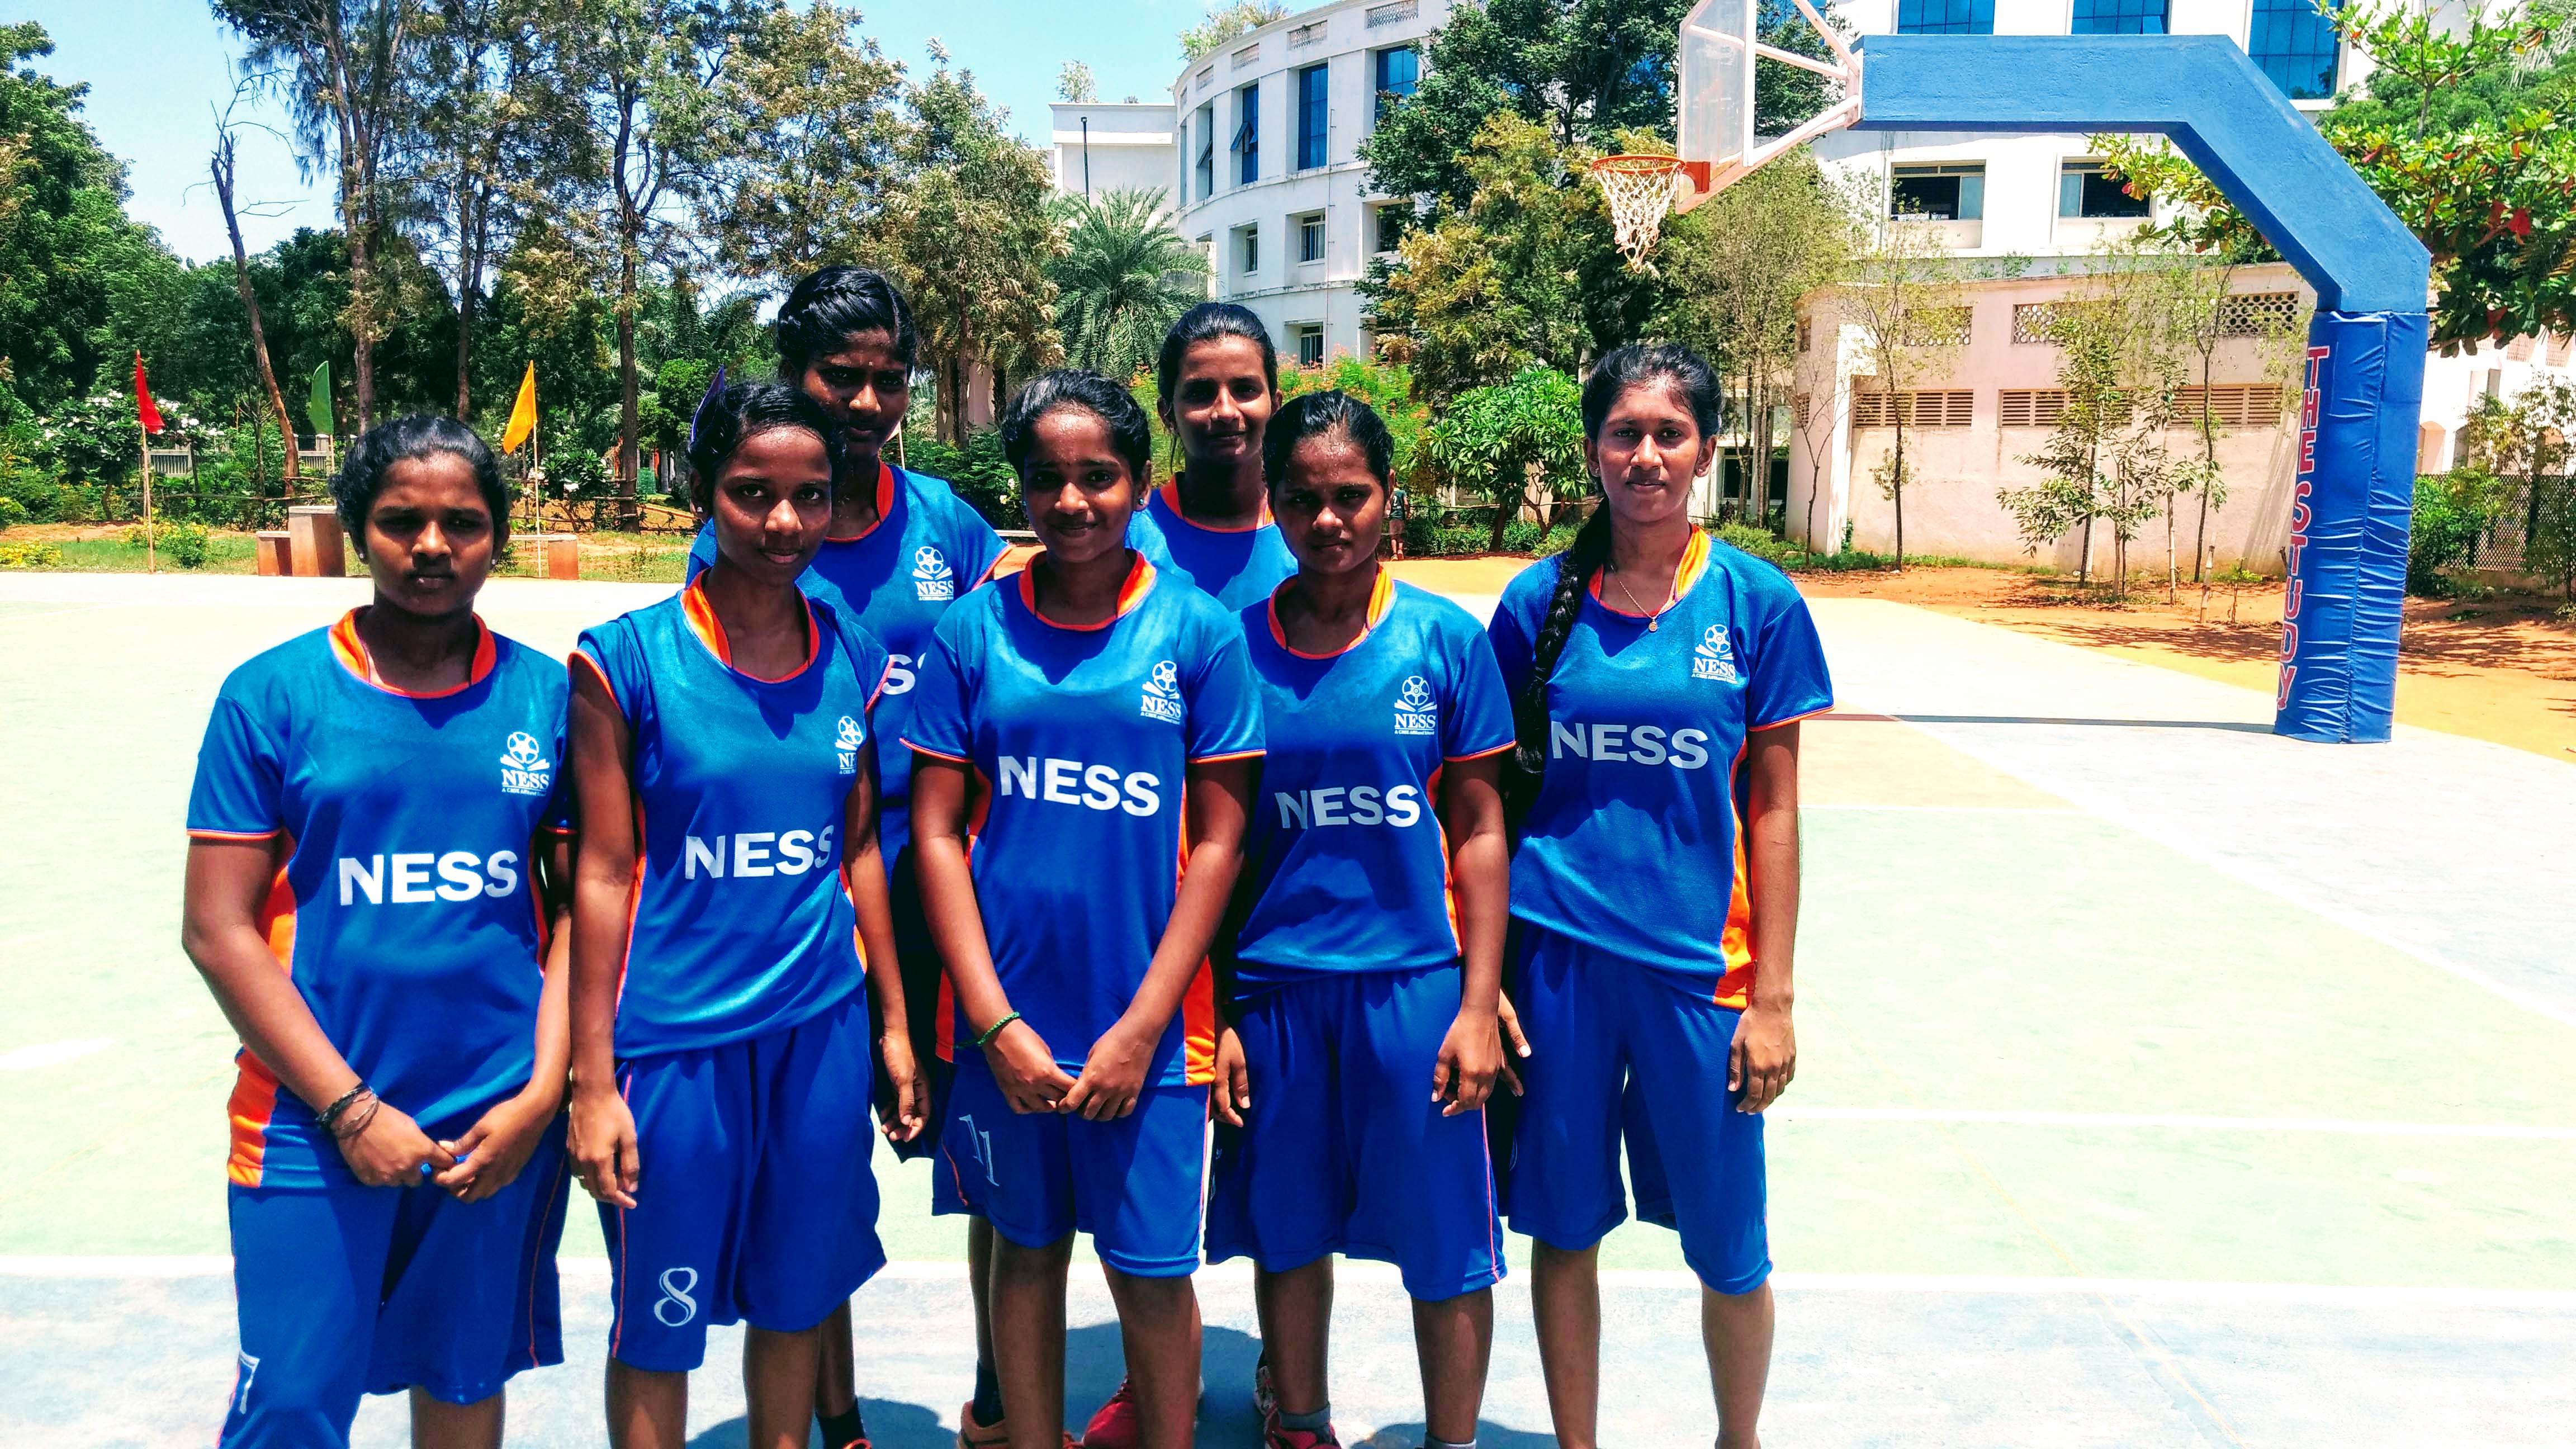 Girls-Basketball Tournament at Study School by 11th &12th Graders